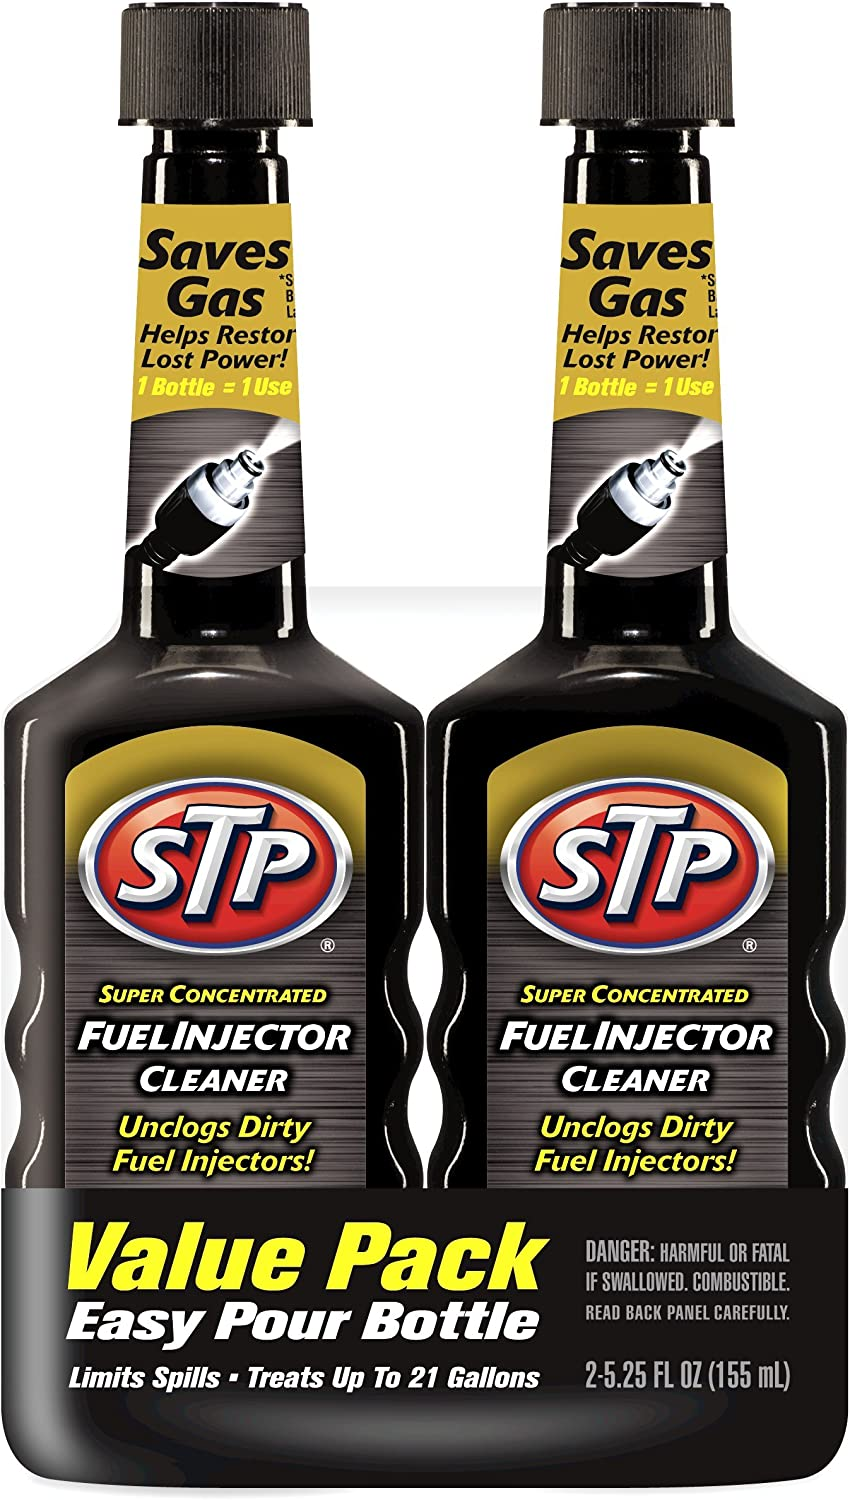 STP 78577 Bottles Super Concentrated